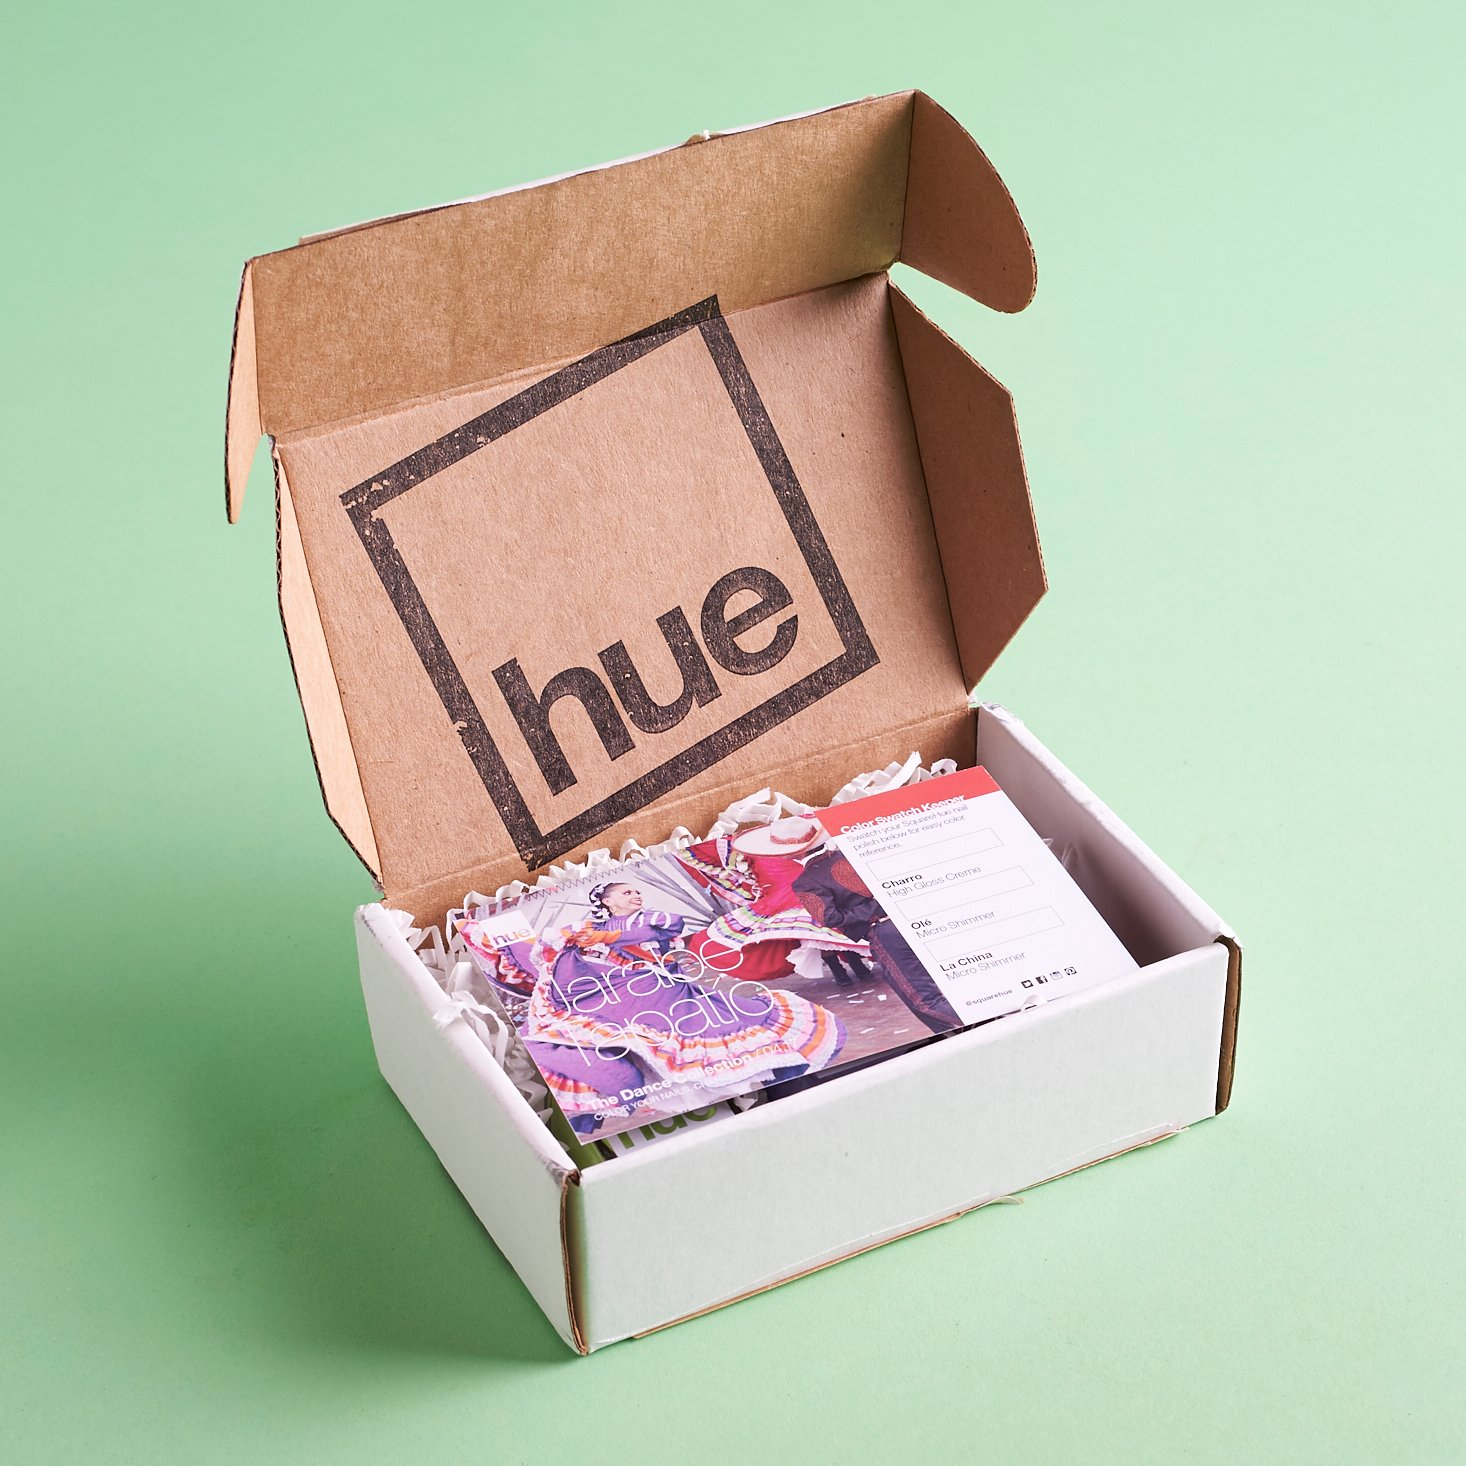 Square Hue April 2017 0001 Is A Monthly Nail Polish Subscription Box